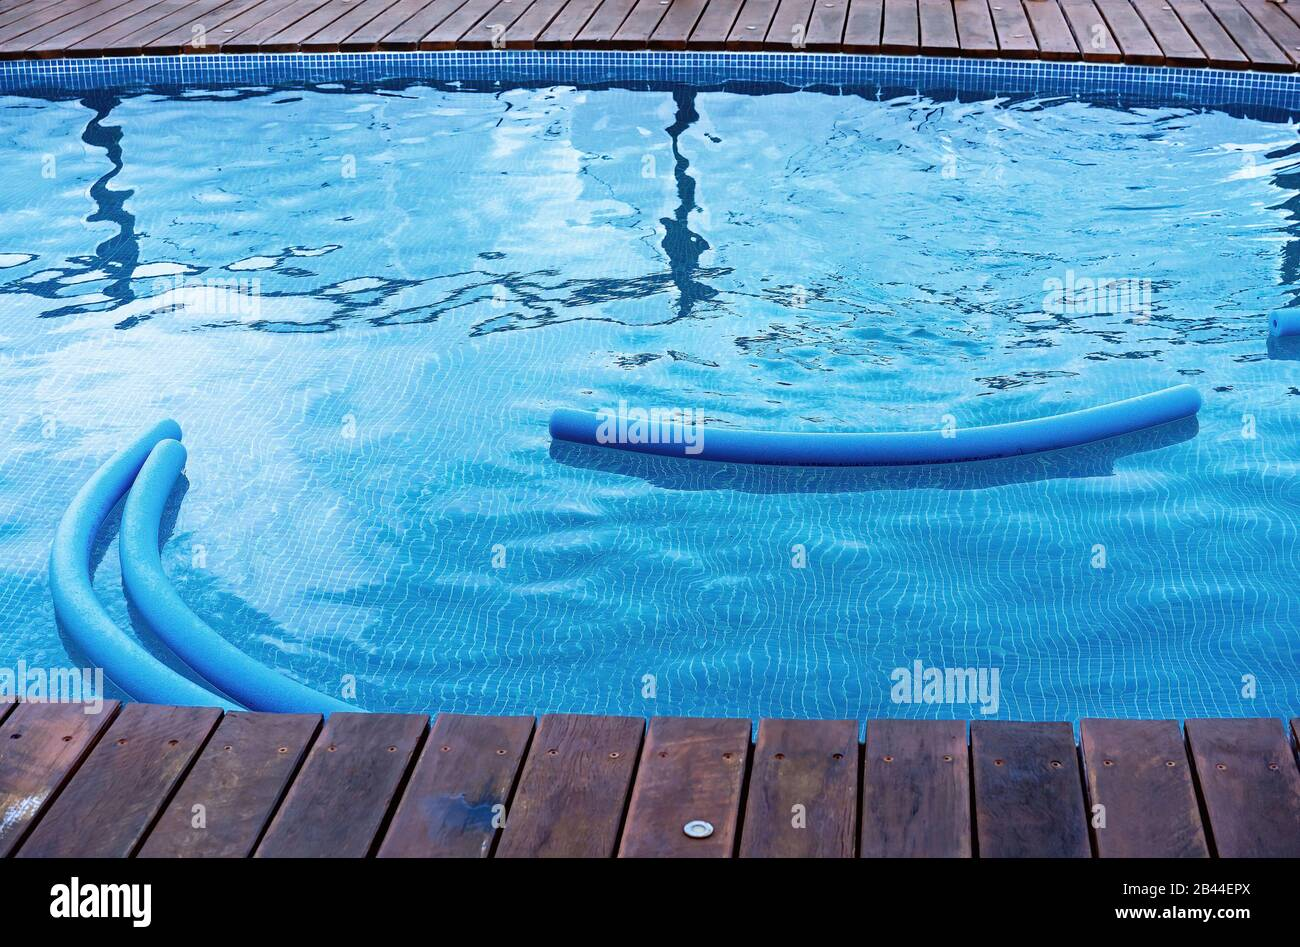 Blue pool floatation devices in a blue water pool edged with blue tiles and a timber deck Stock Photo